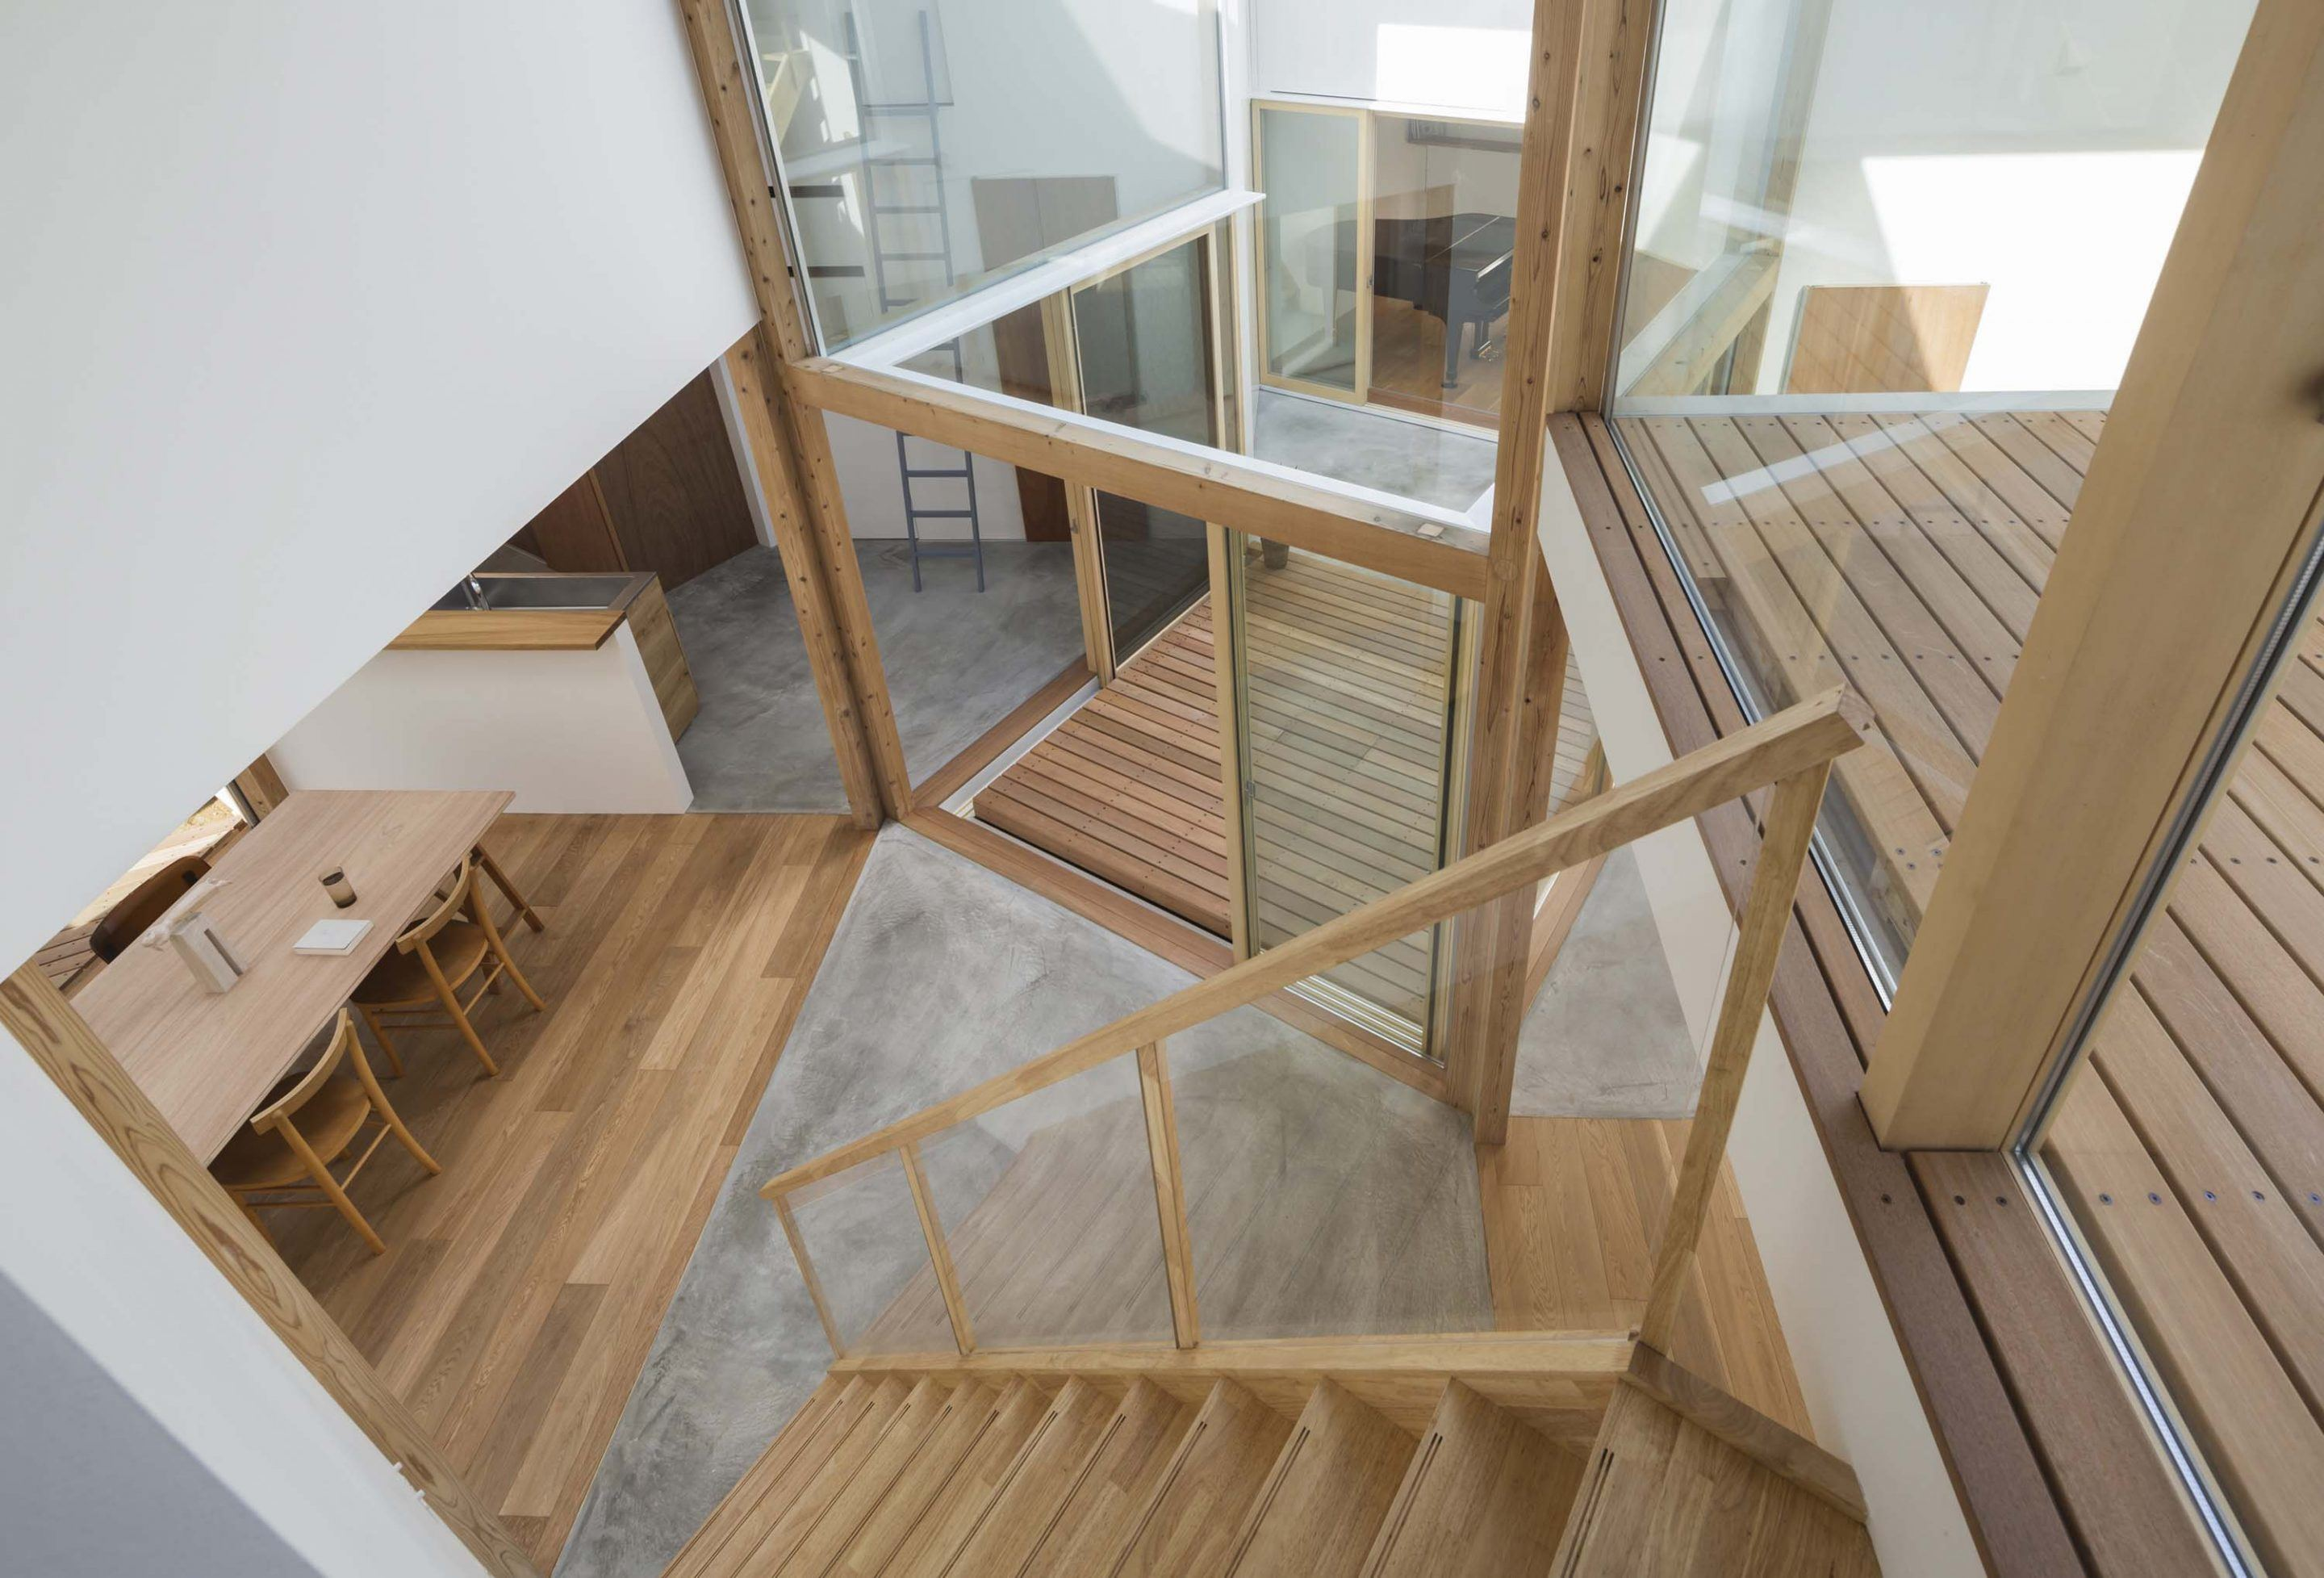 IGNANT-Architecture-Tato-Architects-House-In-Hokusetsu-13